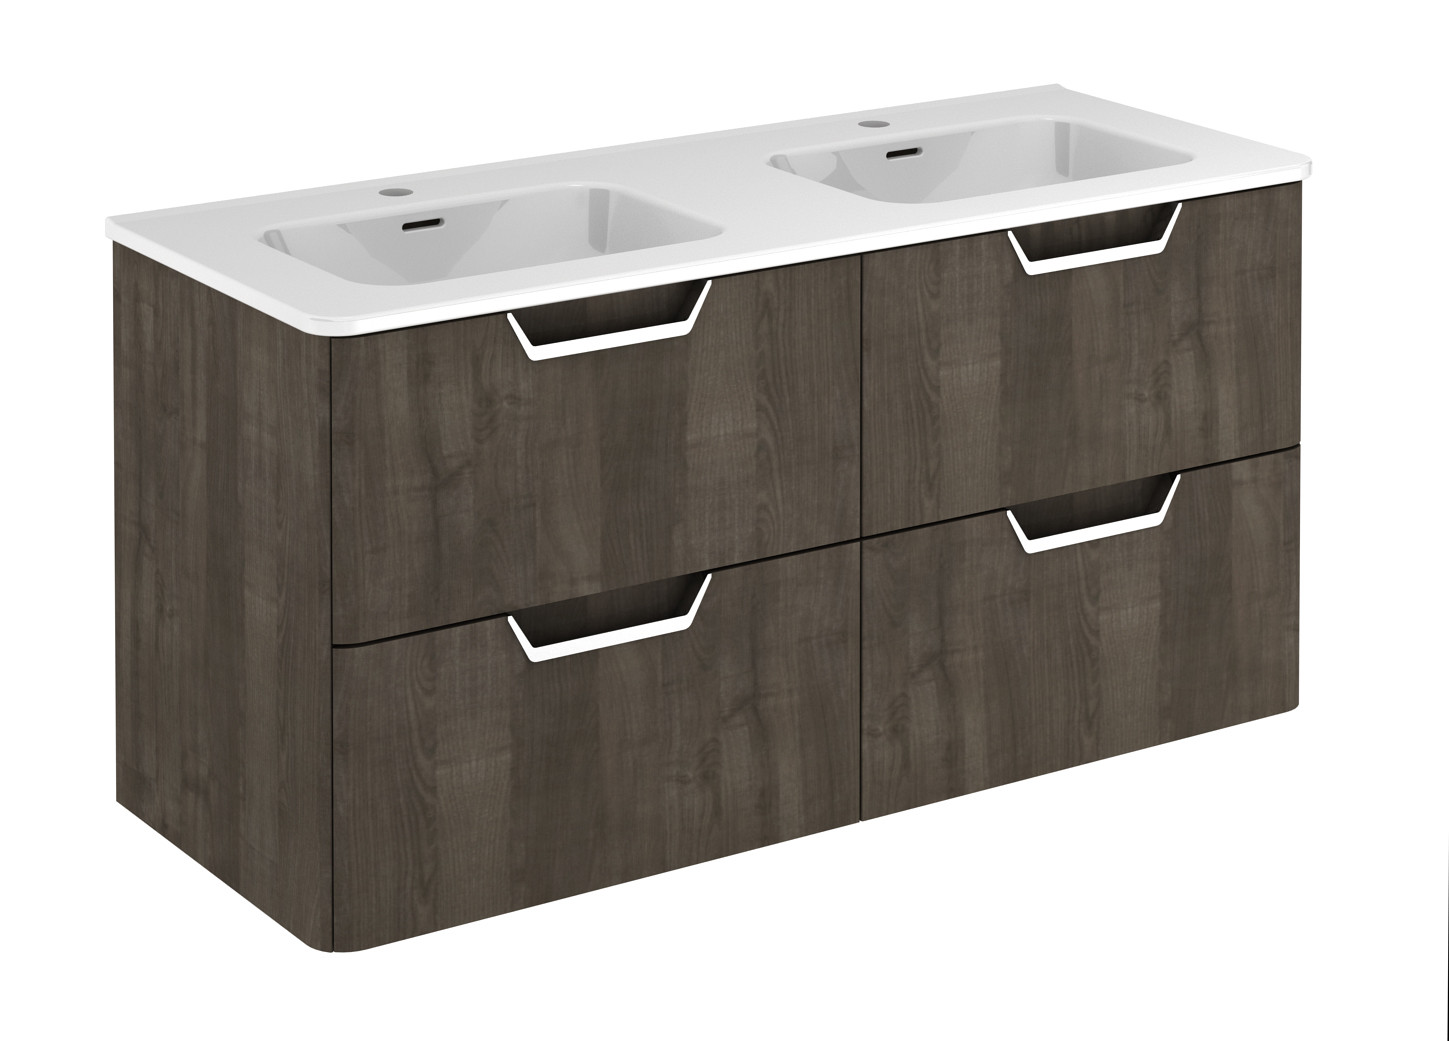 1200mm Vanity Units Life 1200mm Double Basin Wall Hung Vanity Unit Samara